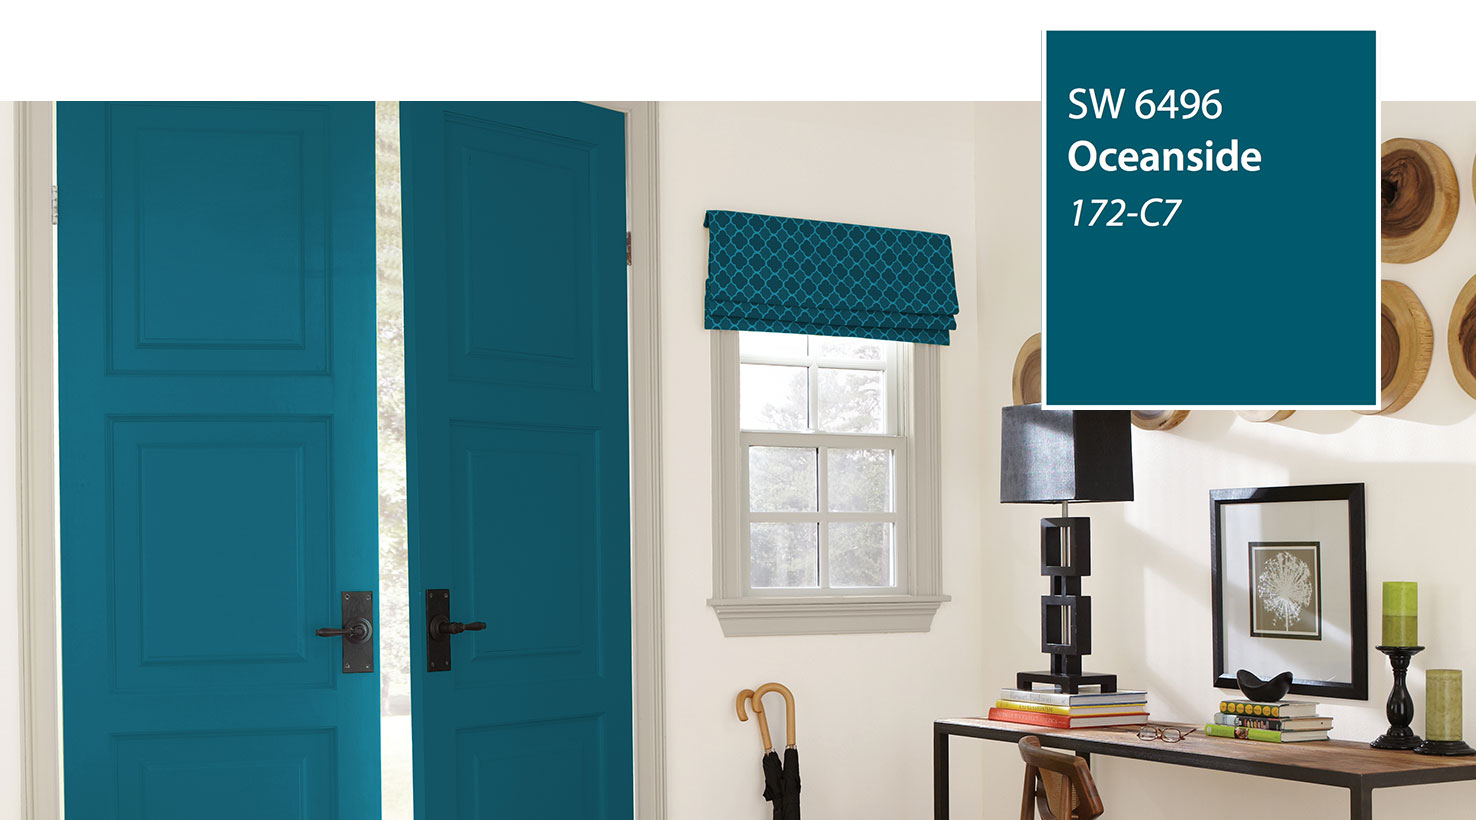 Introducing the 2018 color of the year oceanside sw 6496 for Interior designs 2018